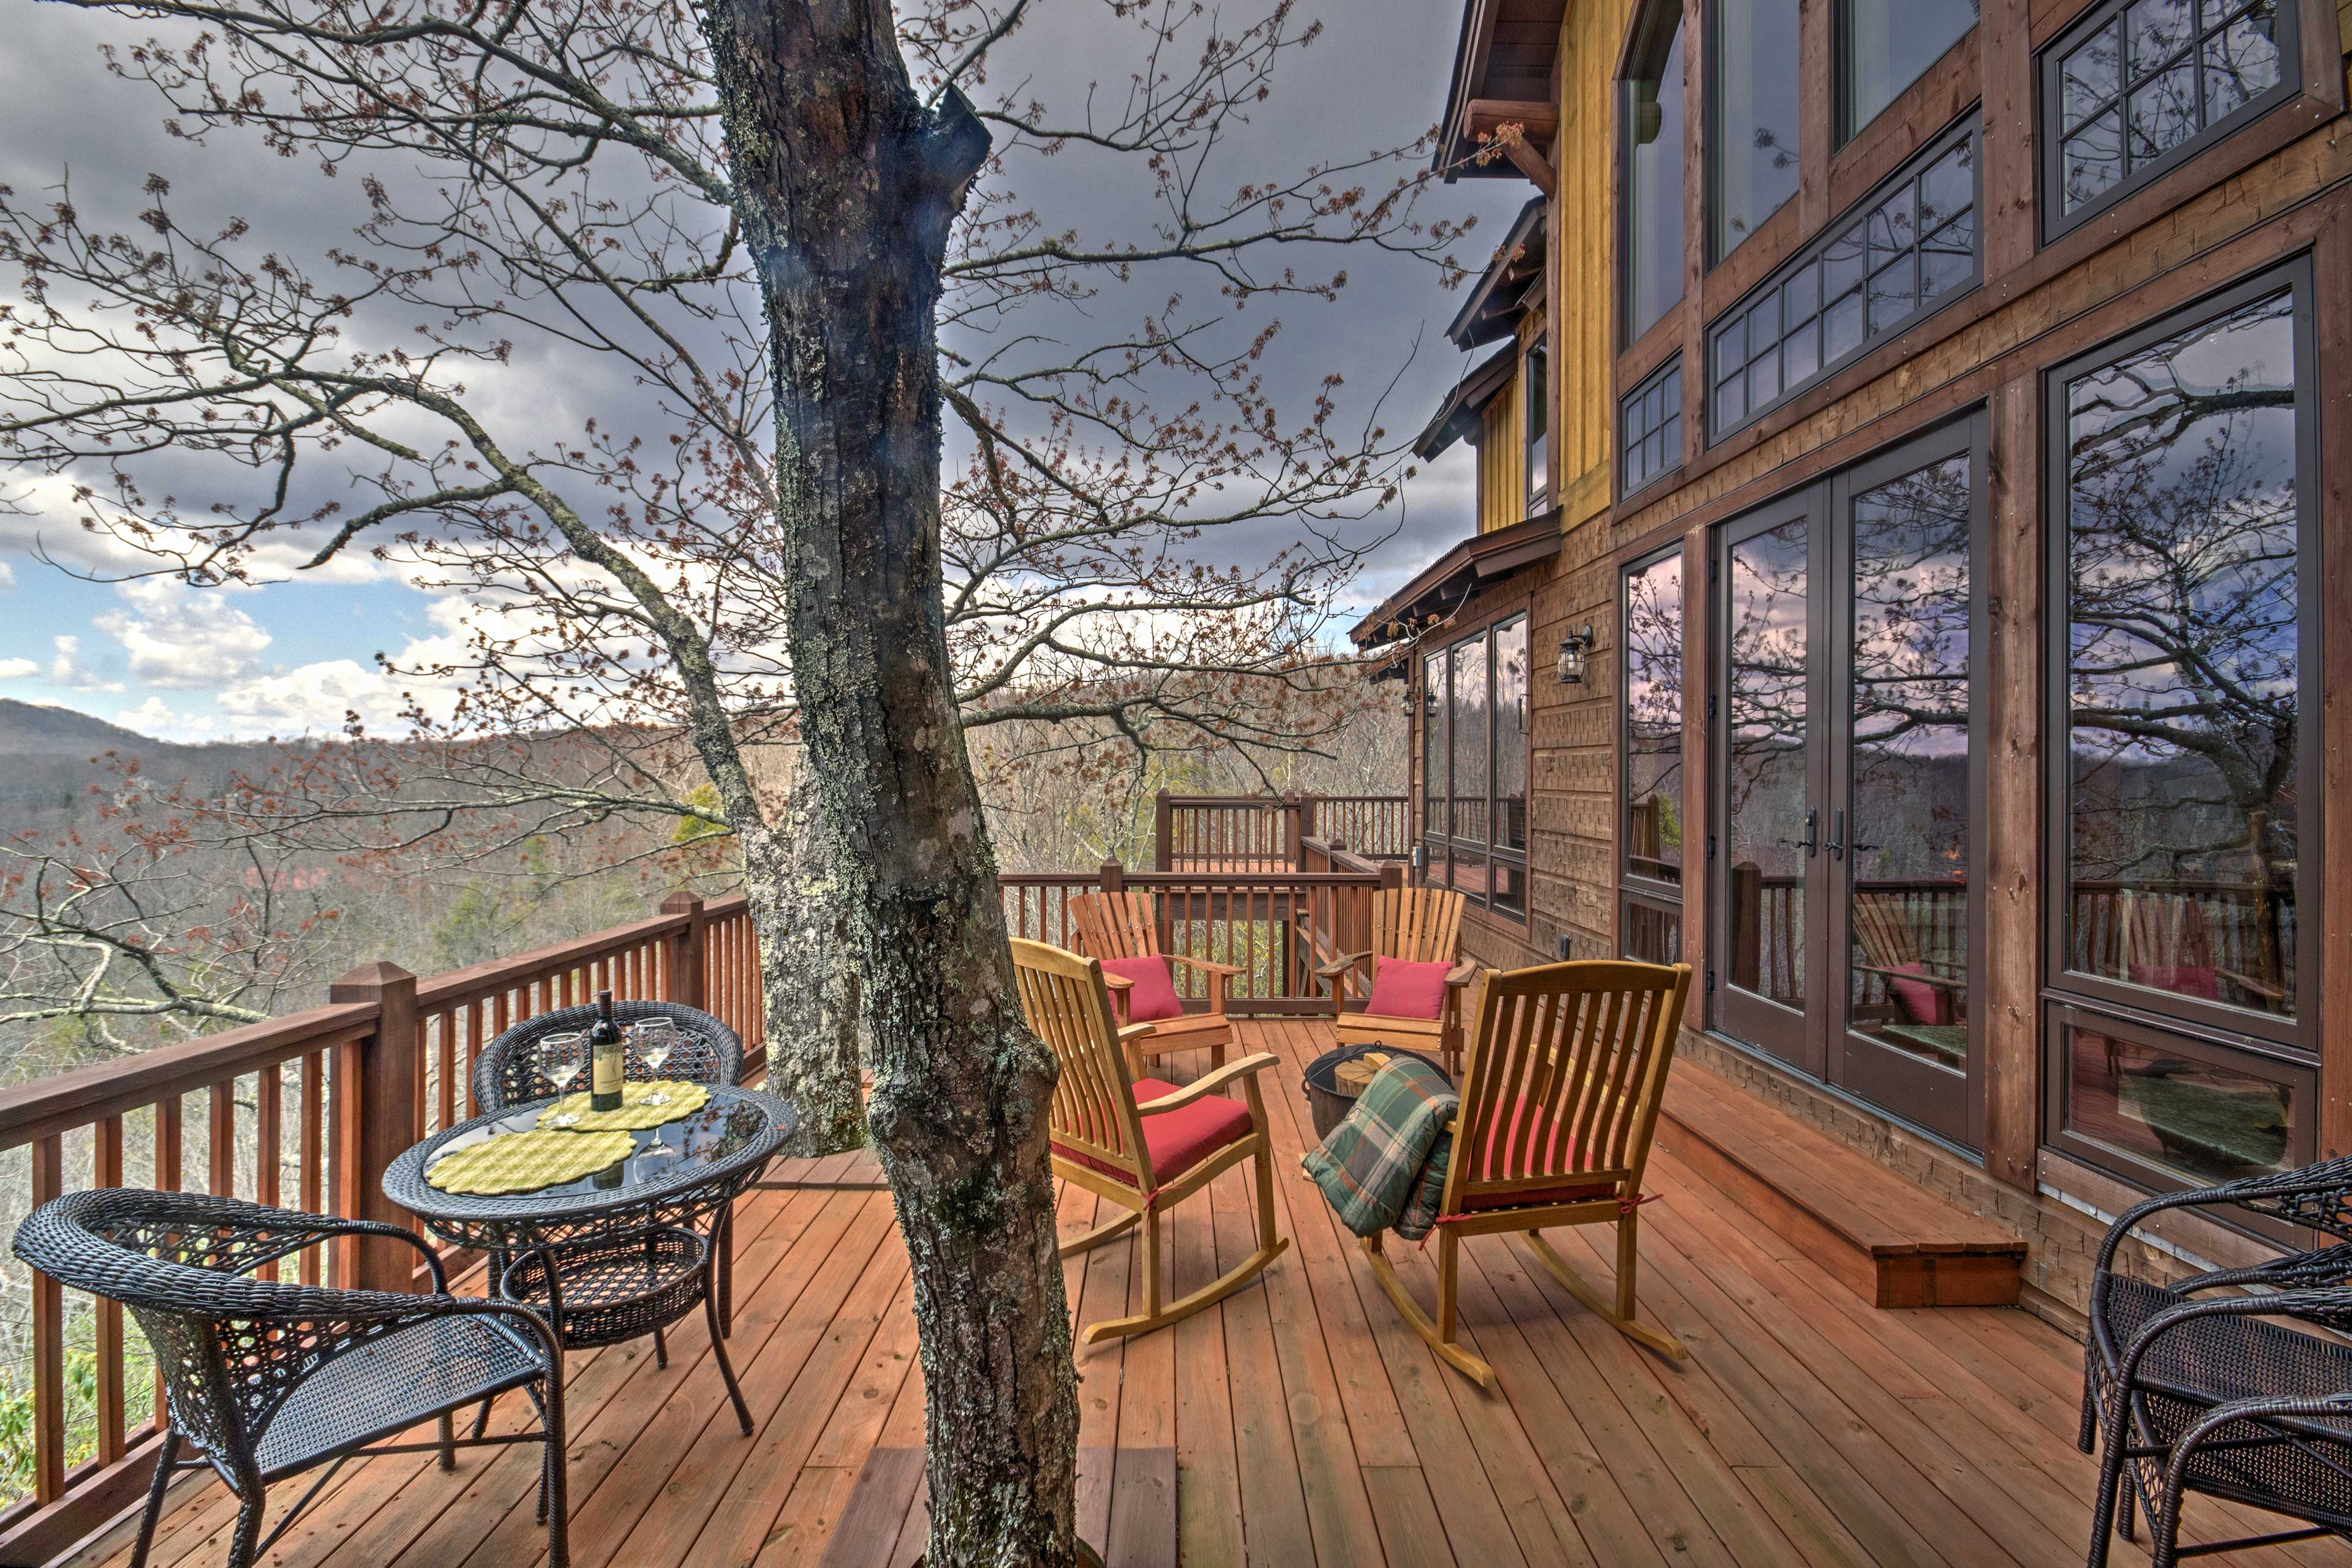 There's a gas and a wood-burning fire pit on the wraparound deck.